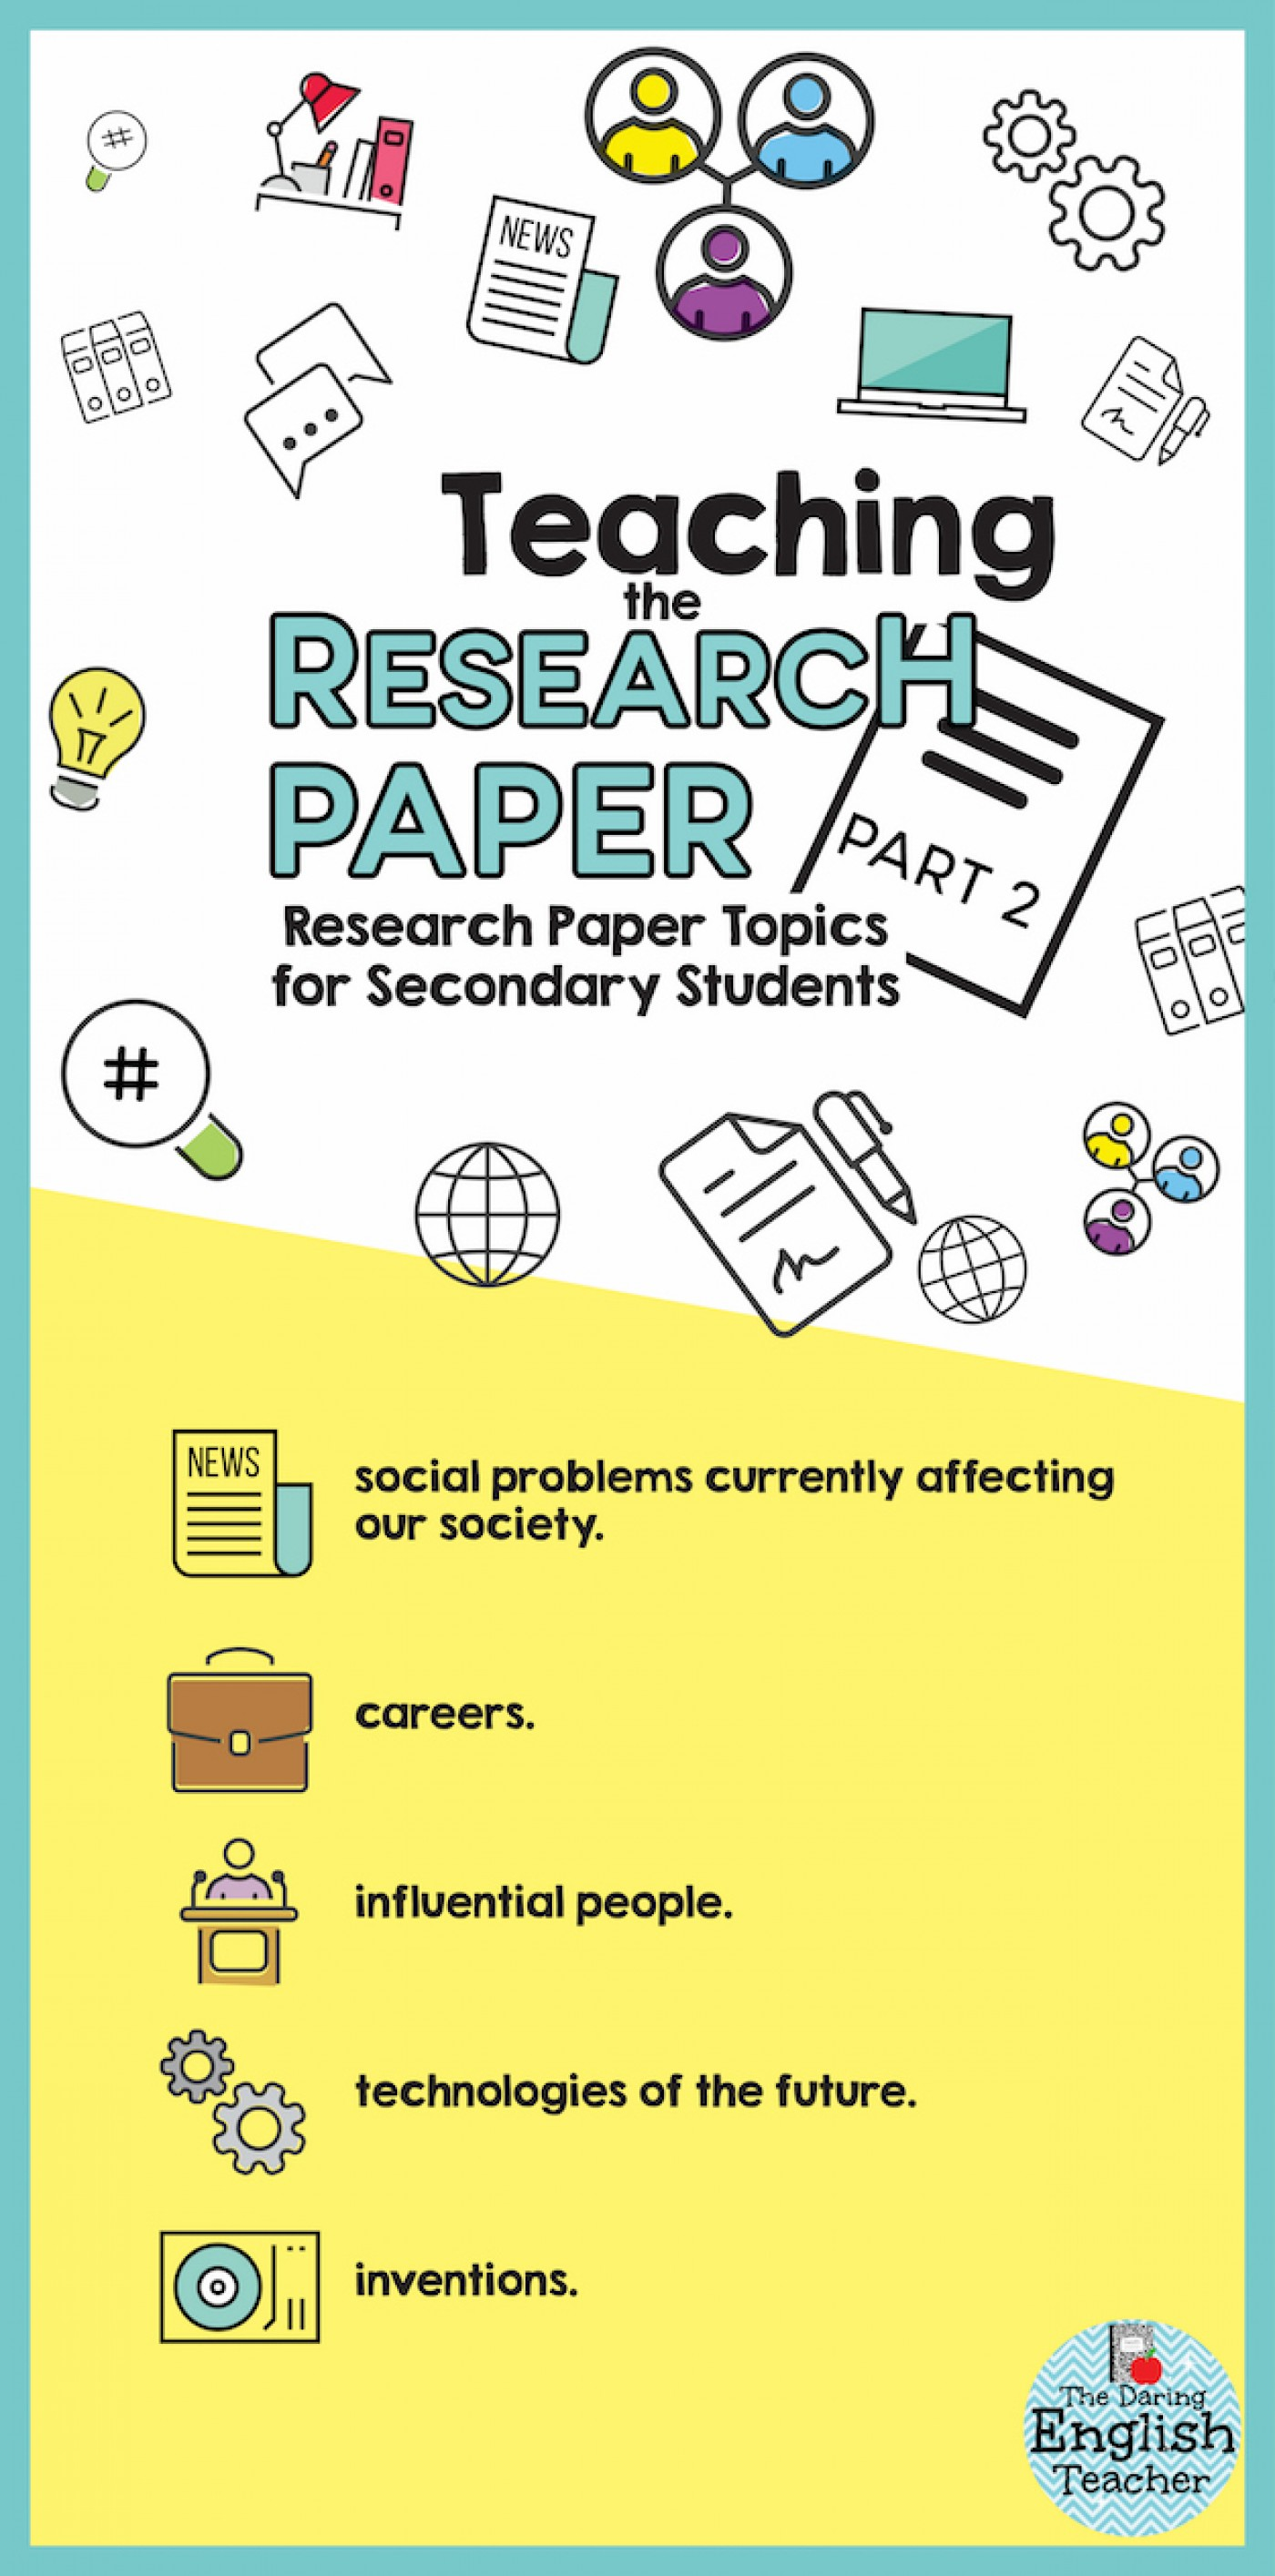 009 Infographic2bp22b2 High School Research Paper Astounding Topics 2017 Science For Students 1400